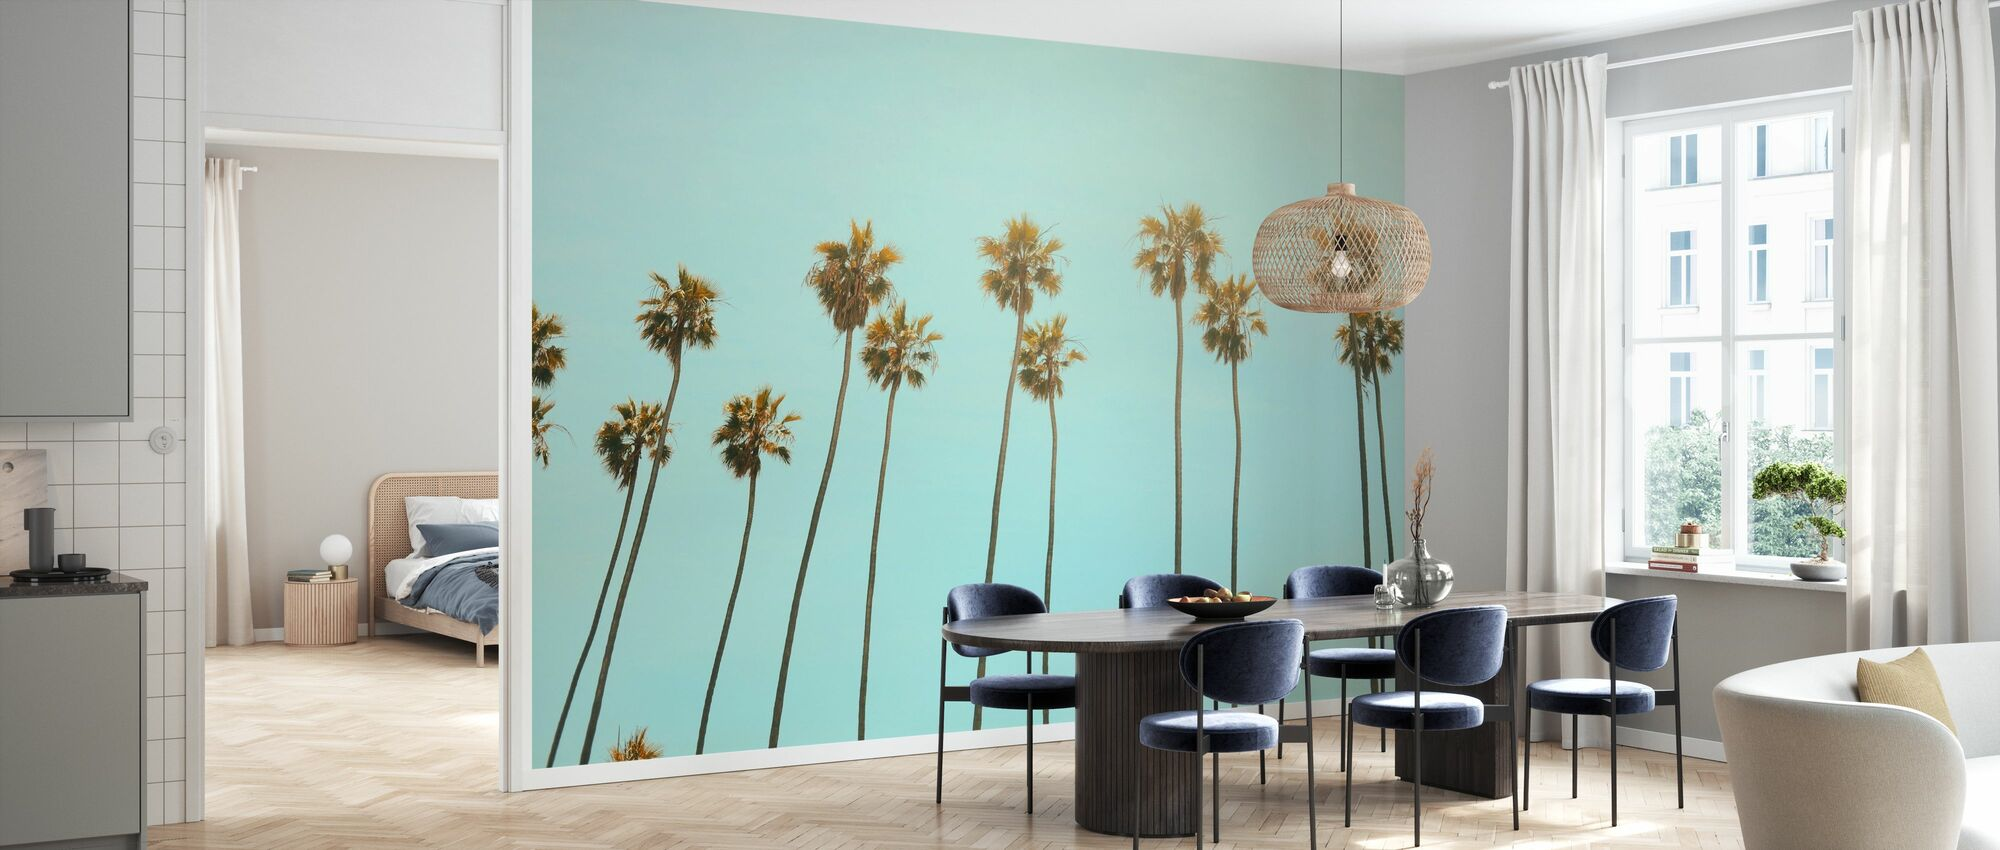 Santa Monica Palm Trees - Wallpaper - Kitchen